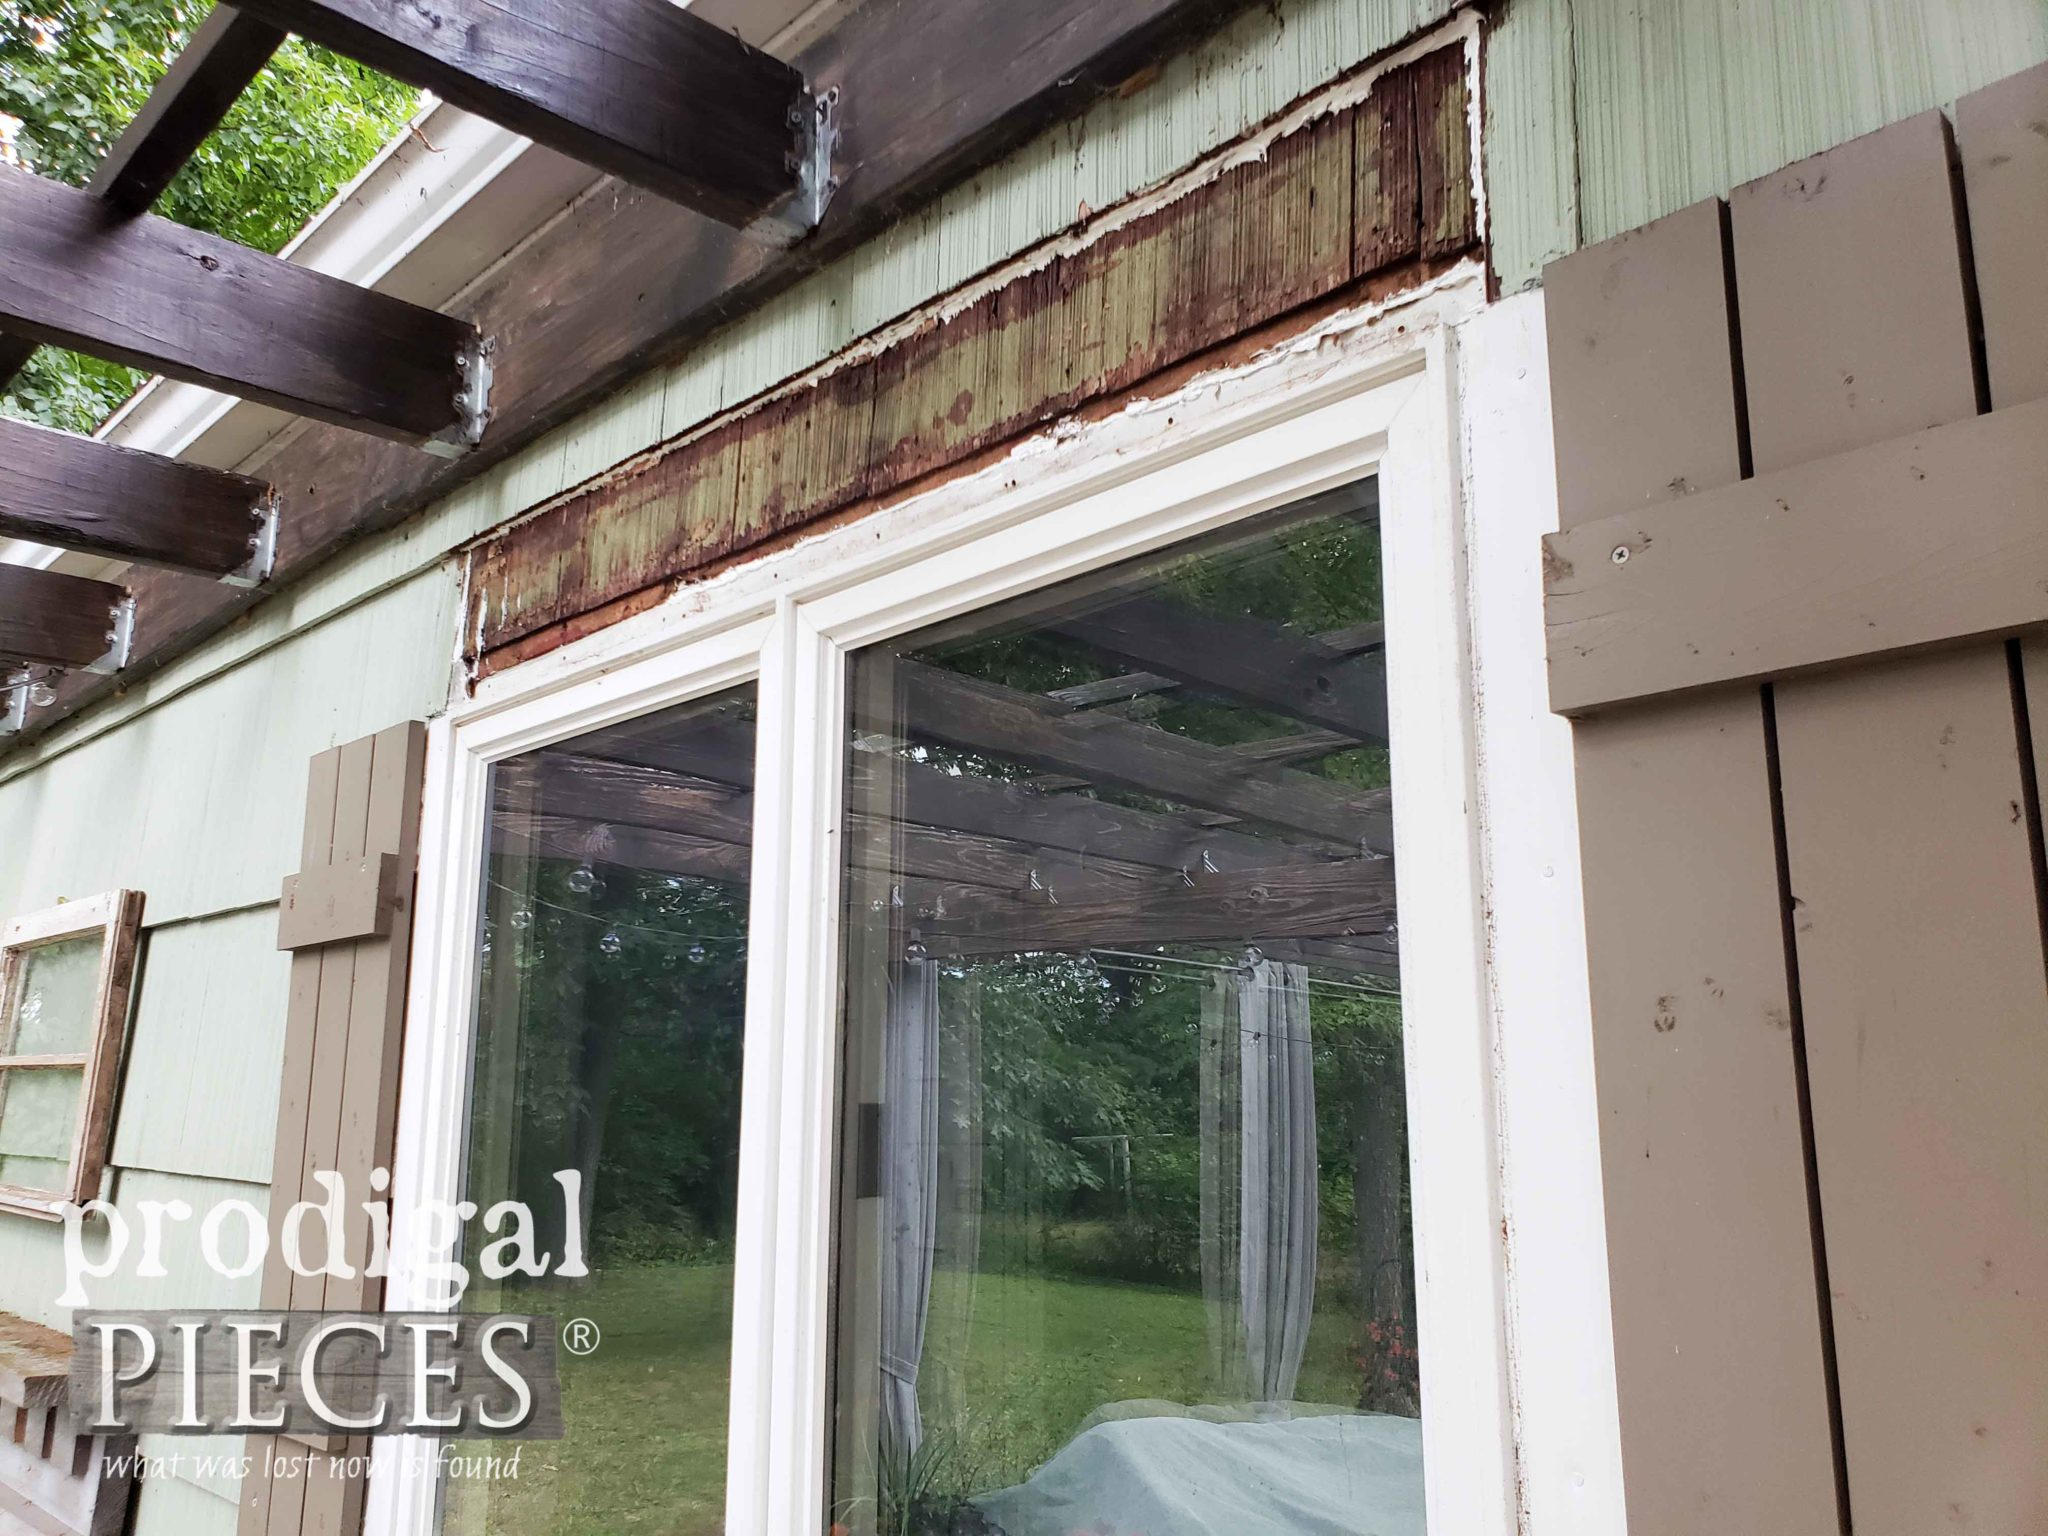 Exposed Siding with Window Repair by Prodigal Pieces | prodigalpieces.com